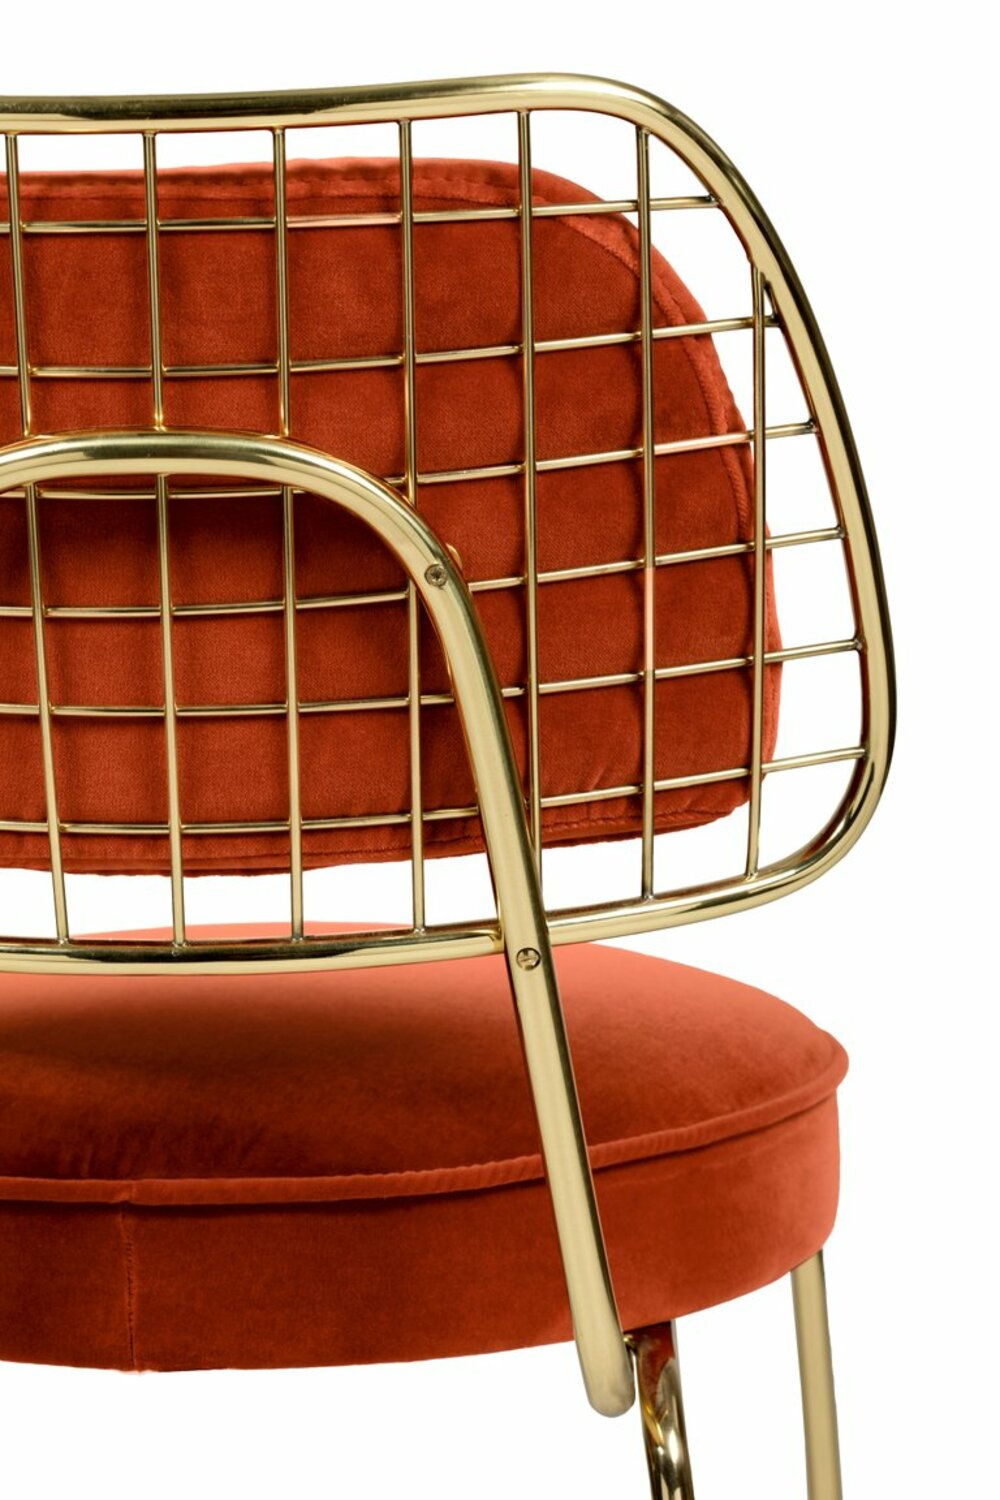 1stdibs 1stdibs: this online marketplace helps you find amazing luxury furniture MarieChair21